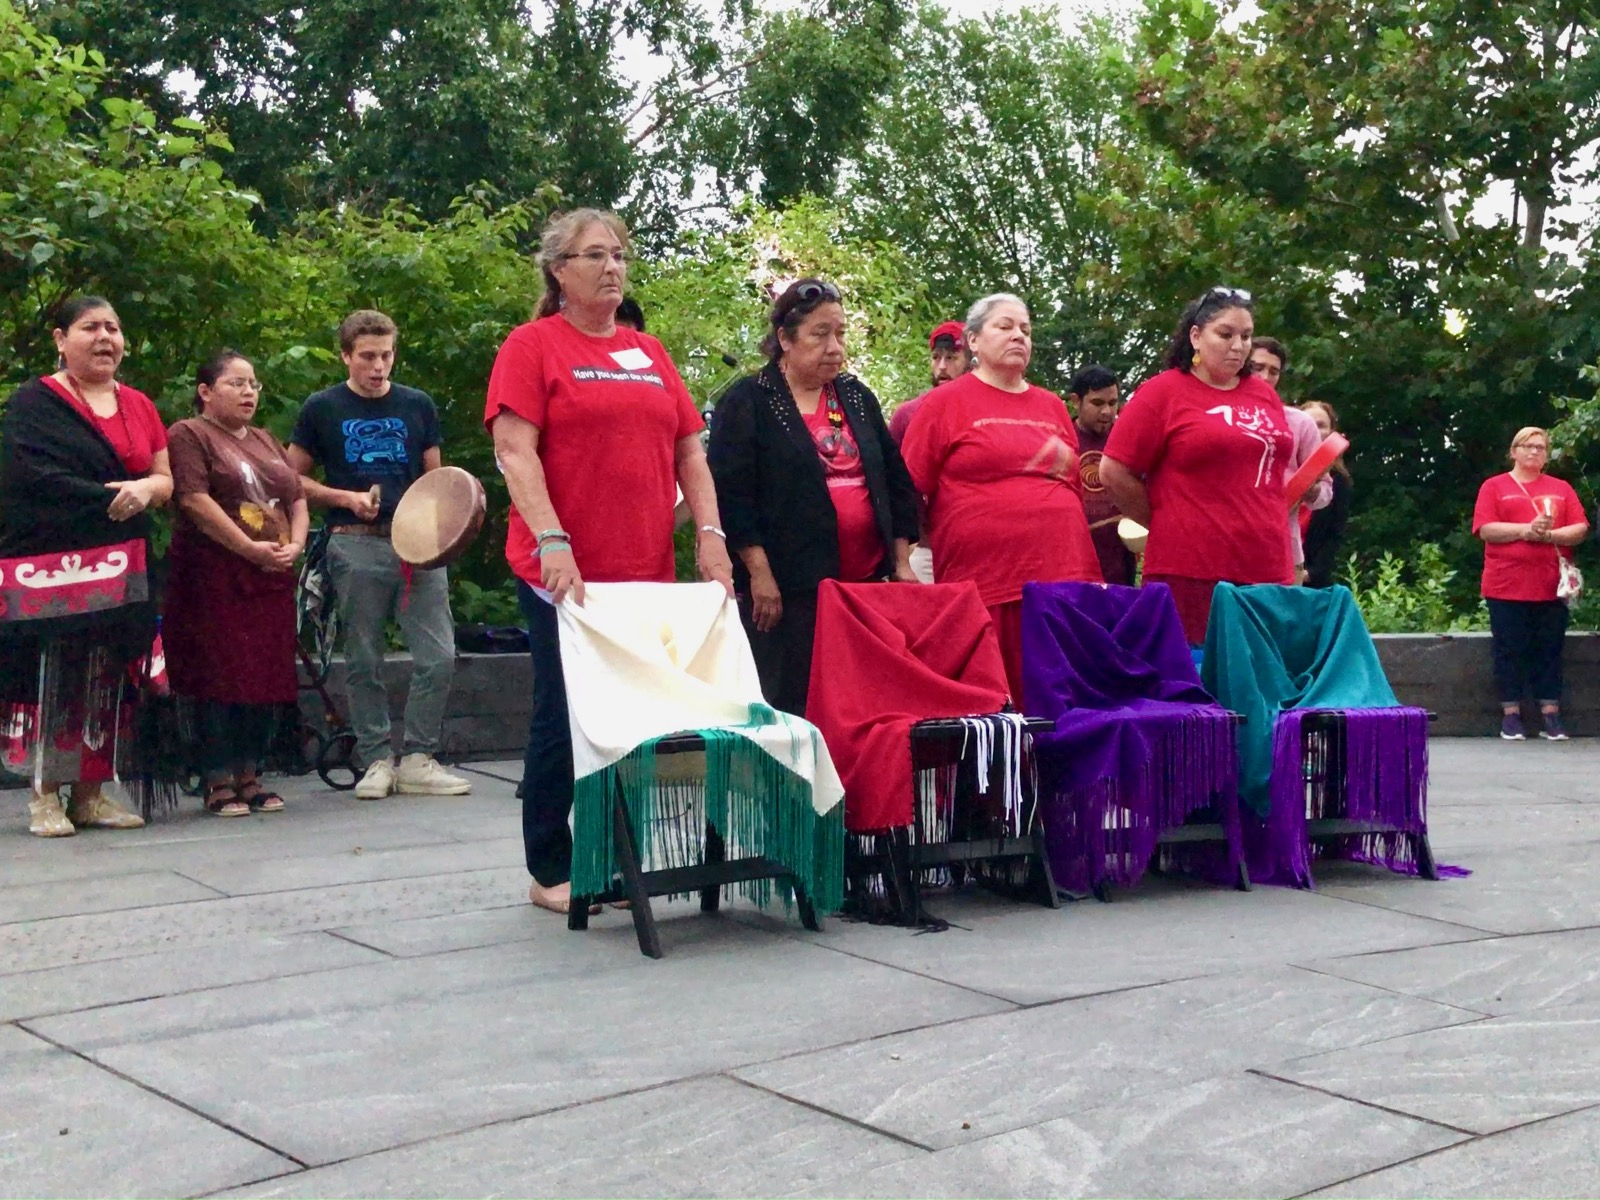 Deleana OtherBull: Native women deserve to be safe